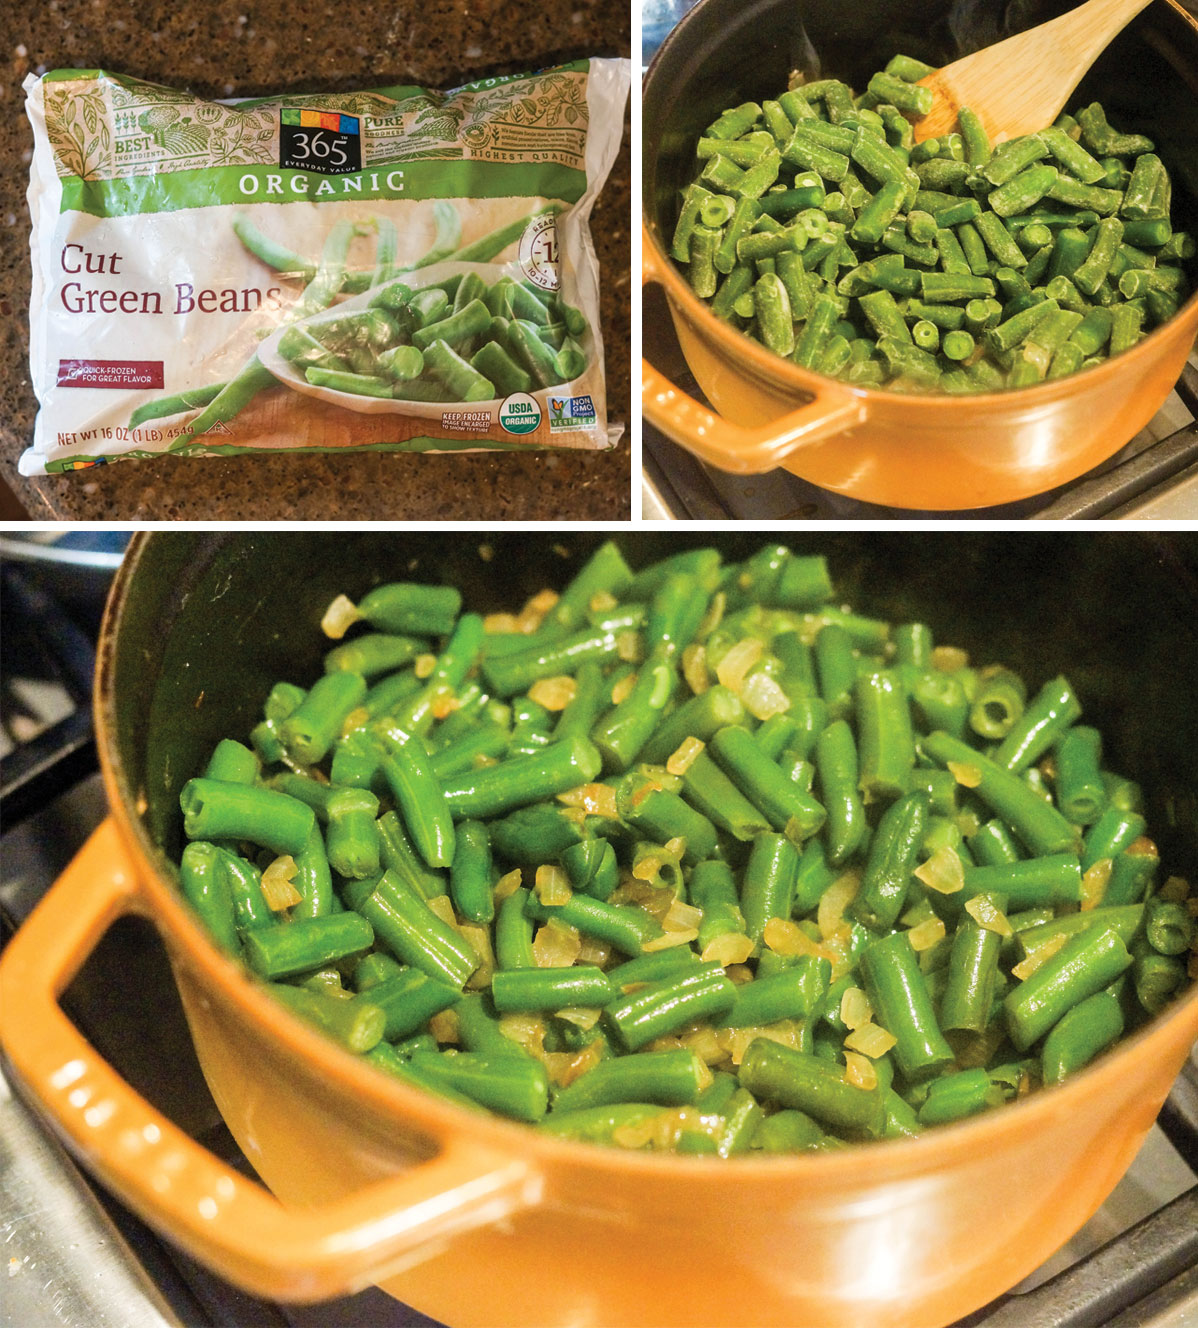 green beans in a bag and in a pot